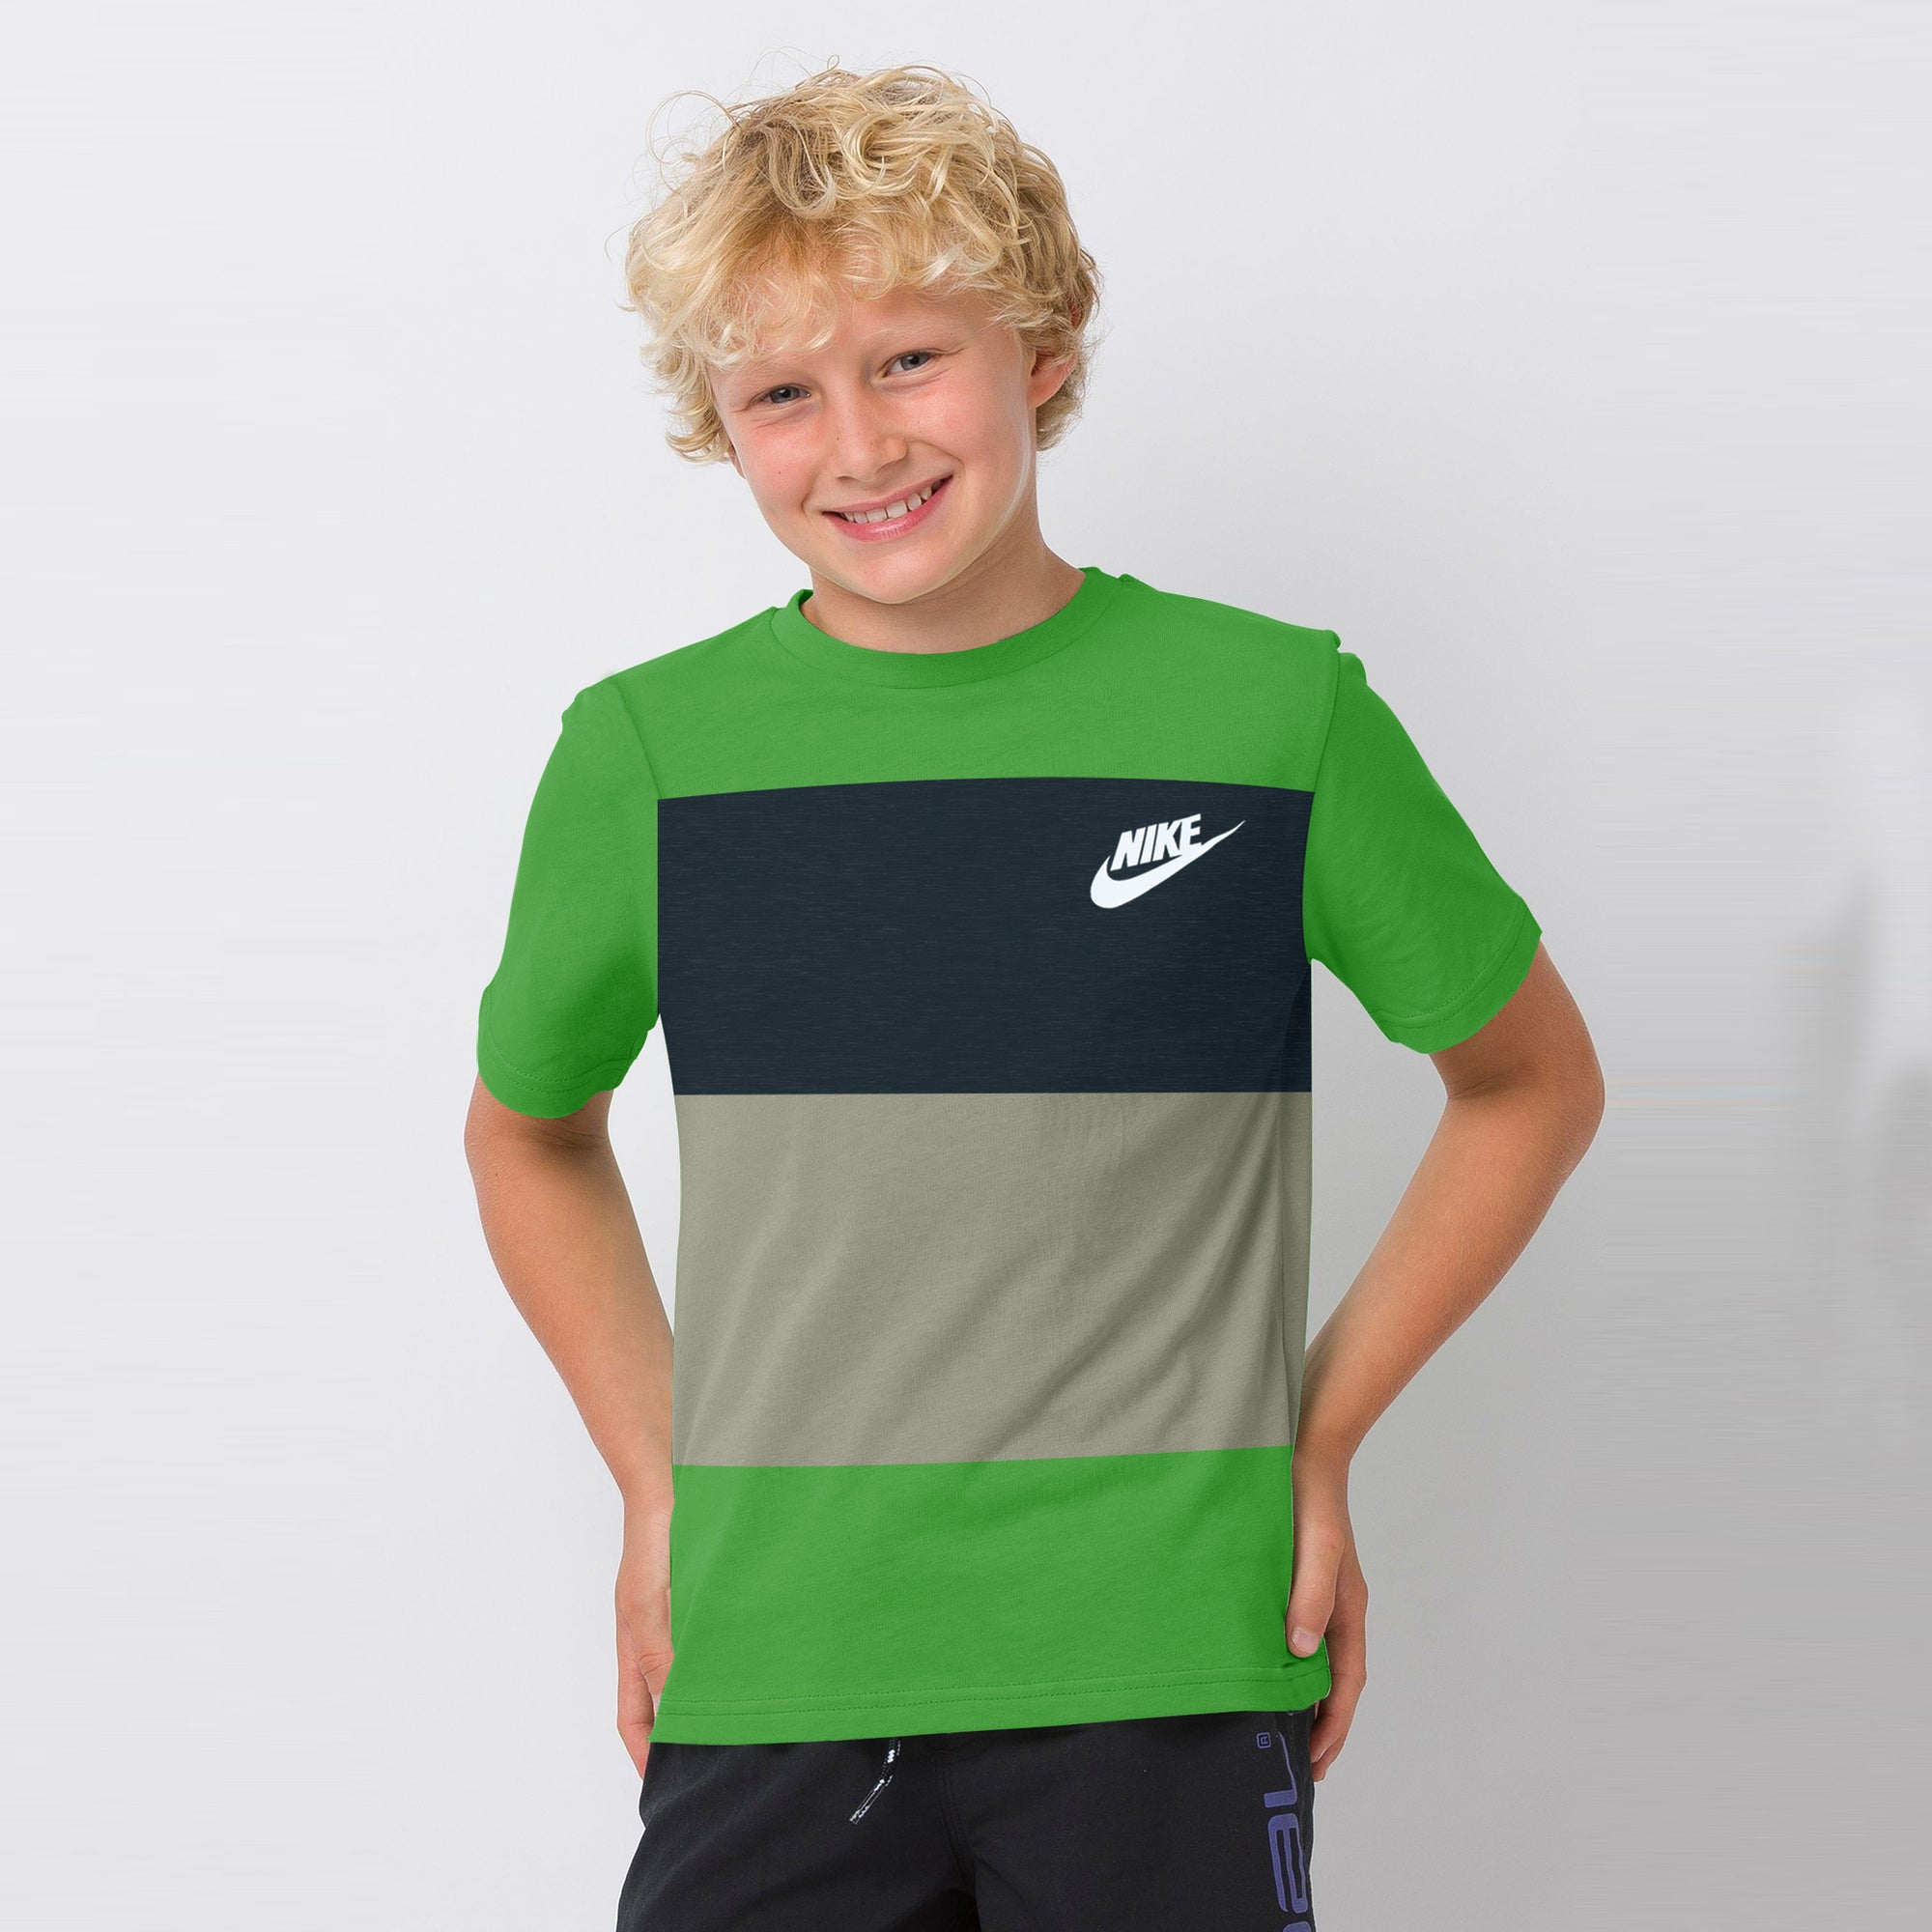 NK Crew Neck Single Jersey Short Sleeve Tee Shirt For Boys-Green with Navy Melange & Grey Melange Panel-SP1966